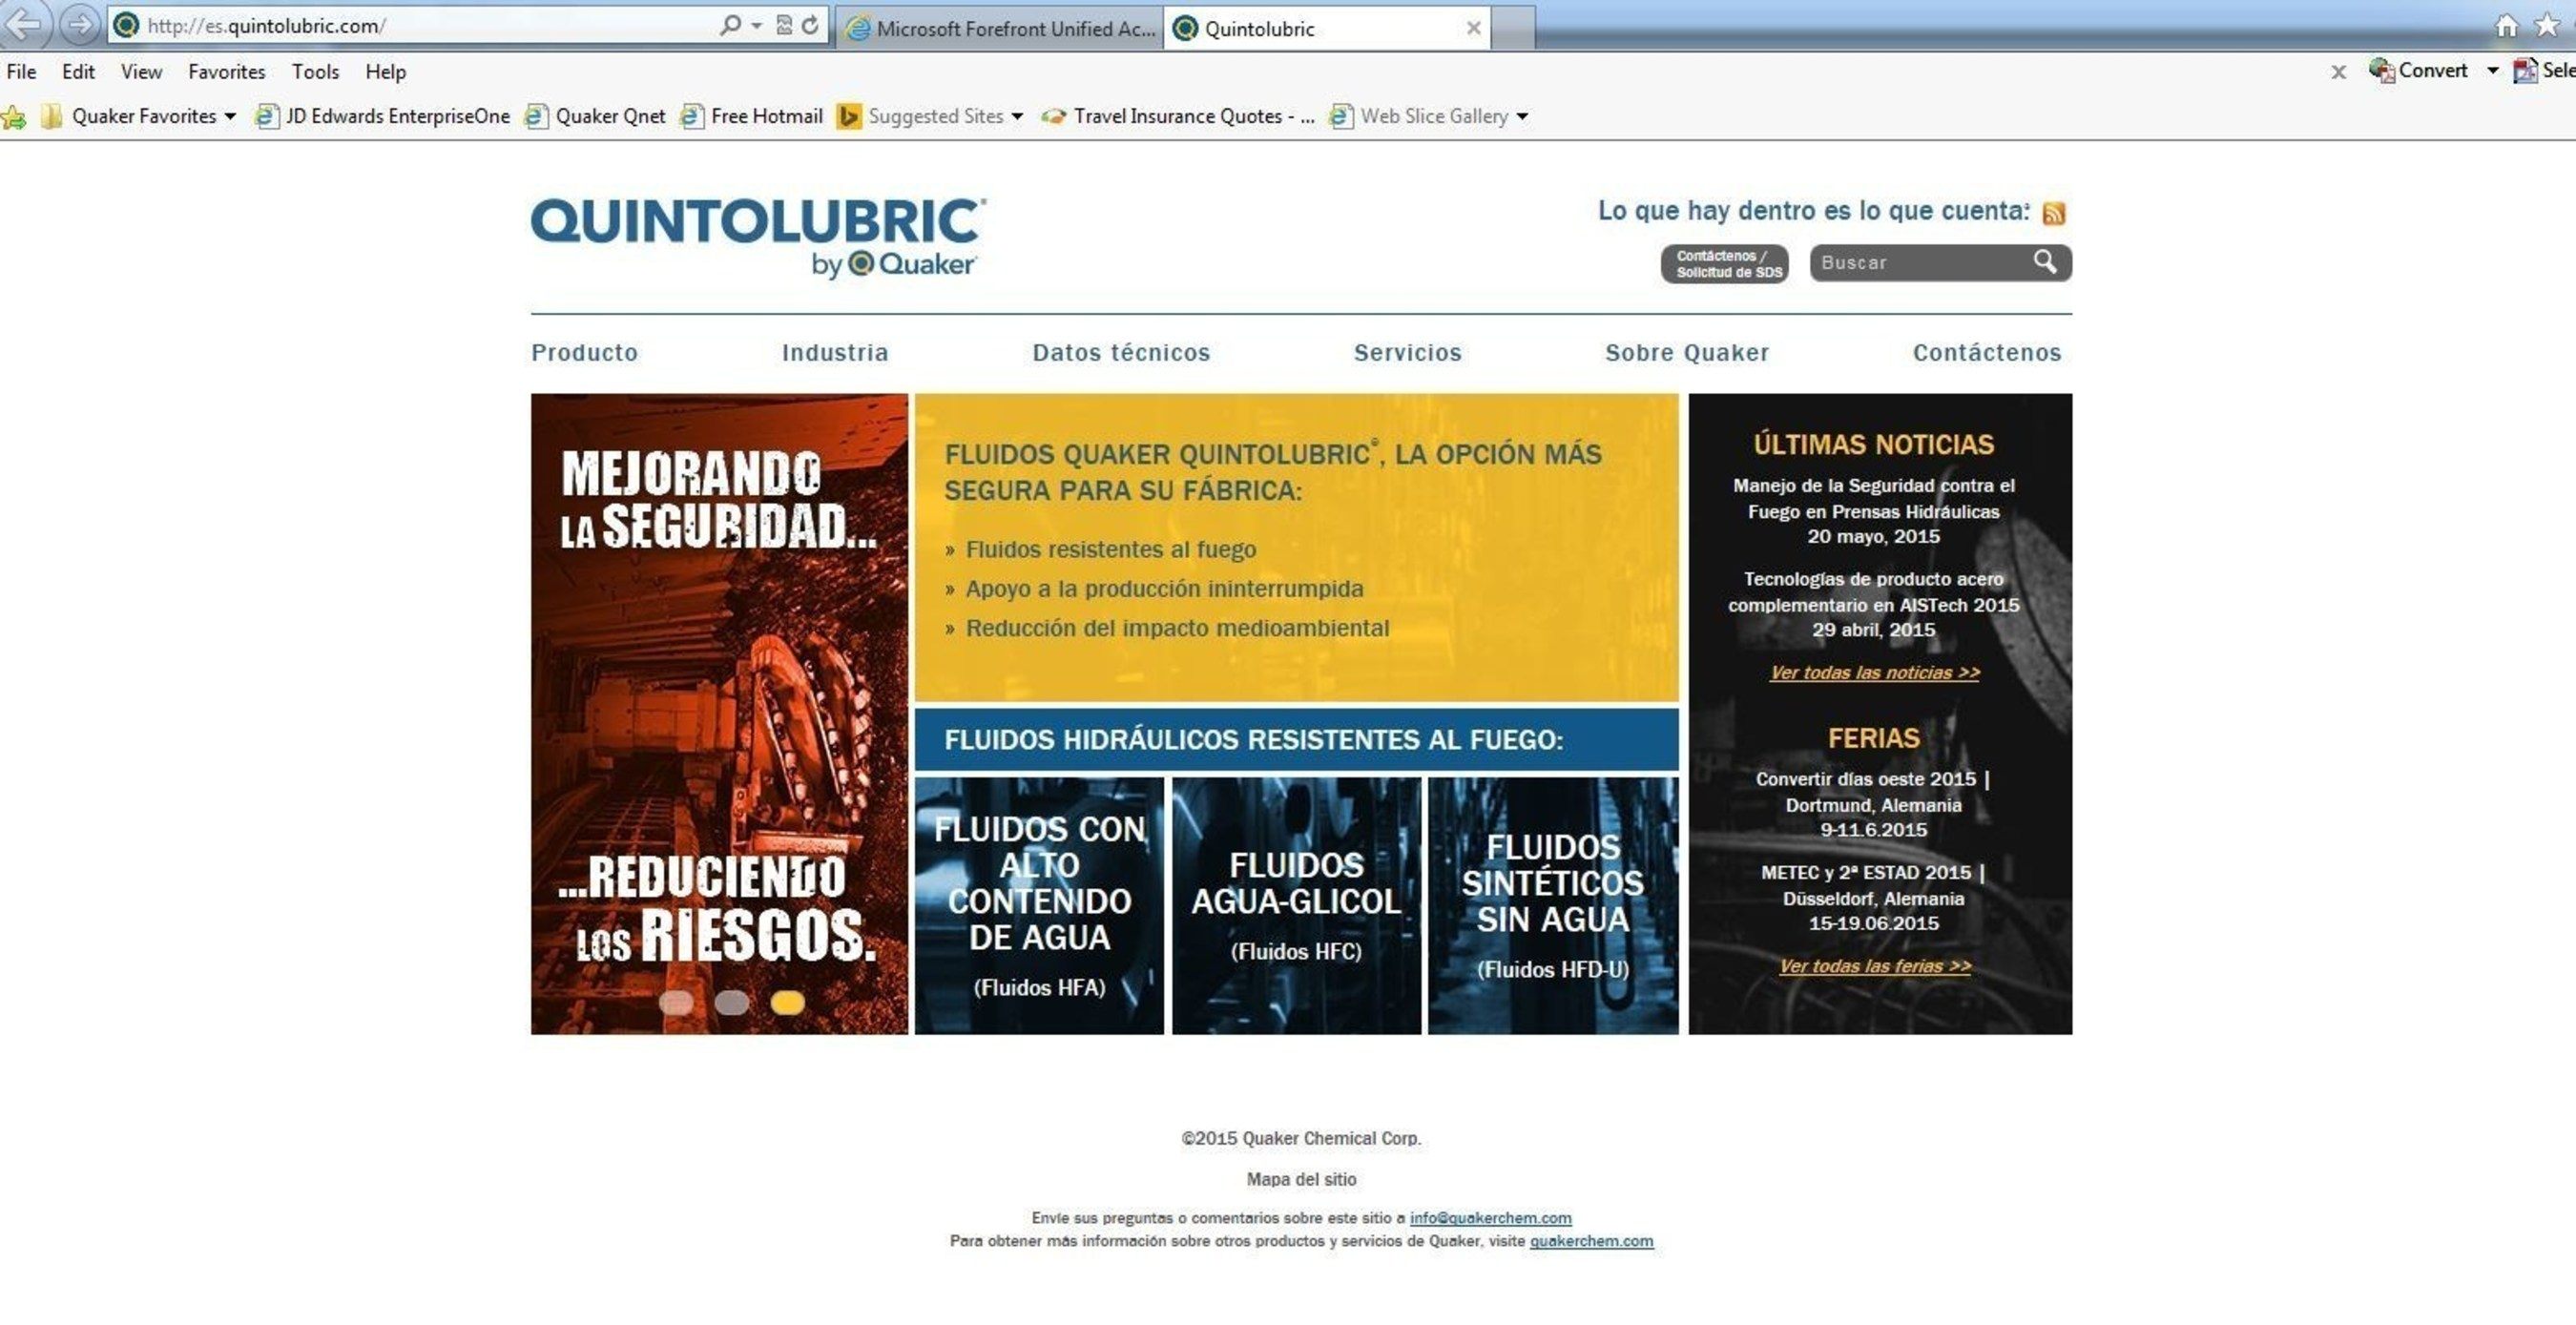 QUINTOLUBRIC.com Fire Resistant Hydraulic Fluids from Quaker Chemical, now in 7 languages